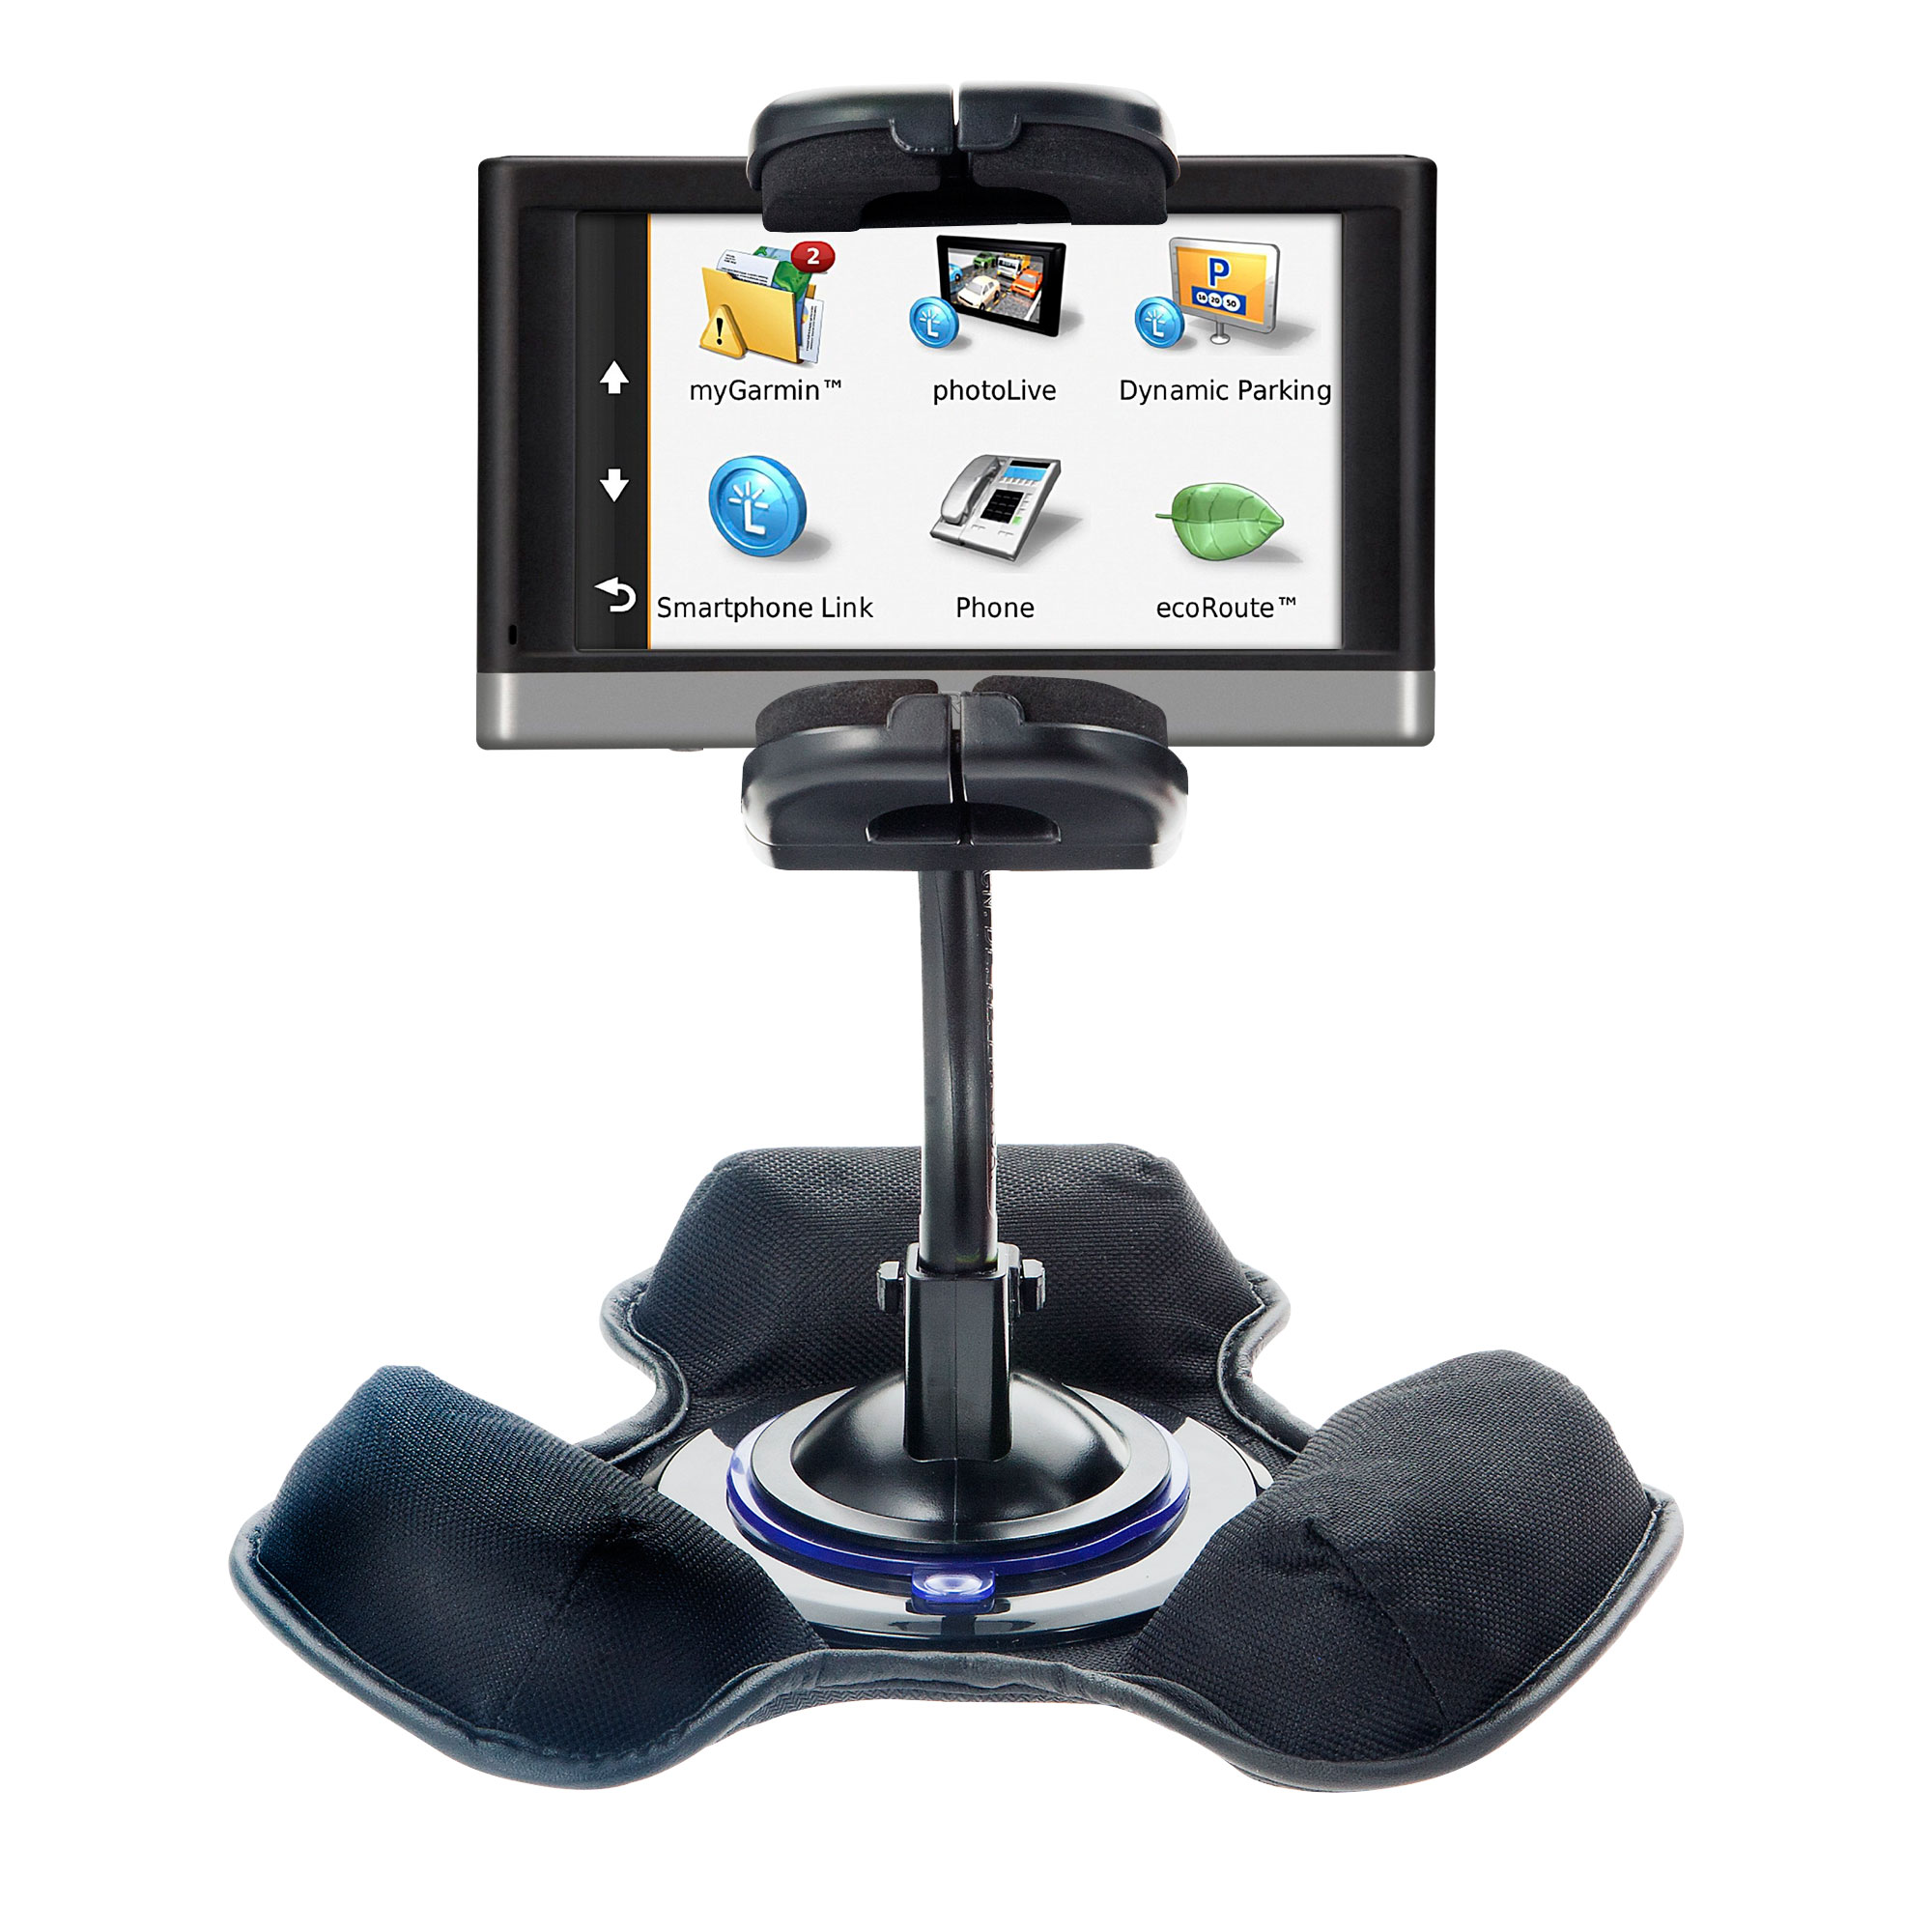 Dash and Windshield Holder compatible with the Garmin nuvi 3597 LMTHD